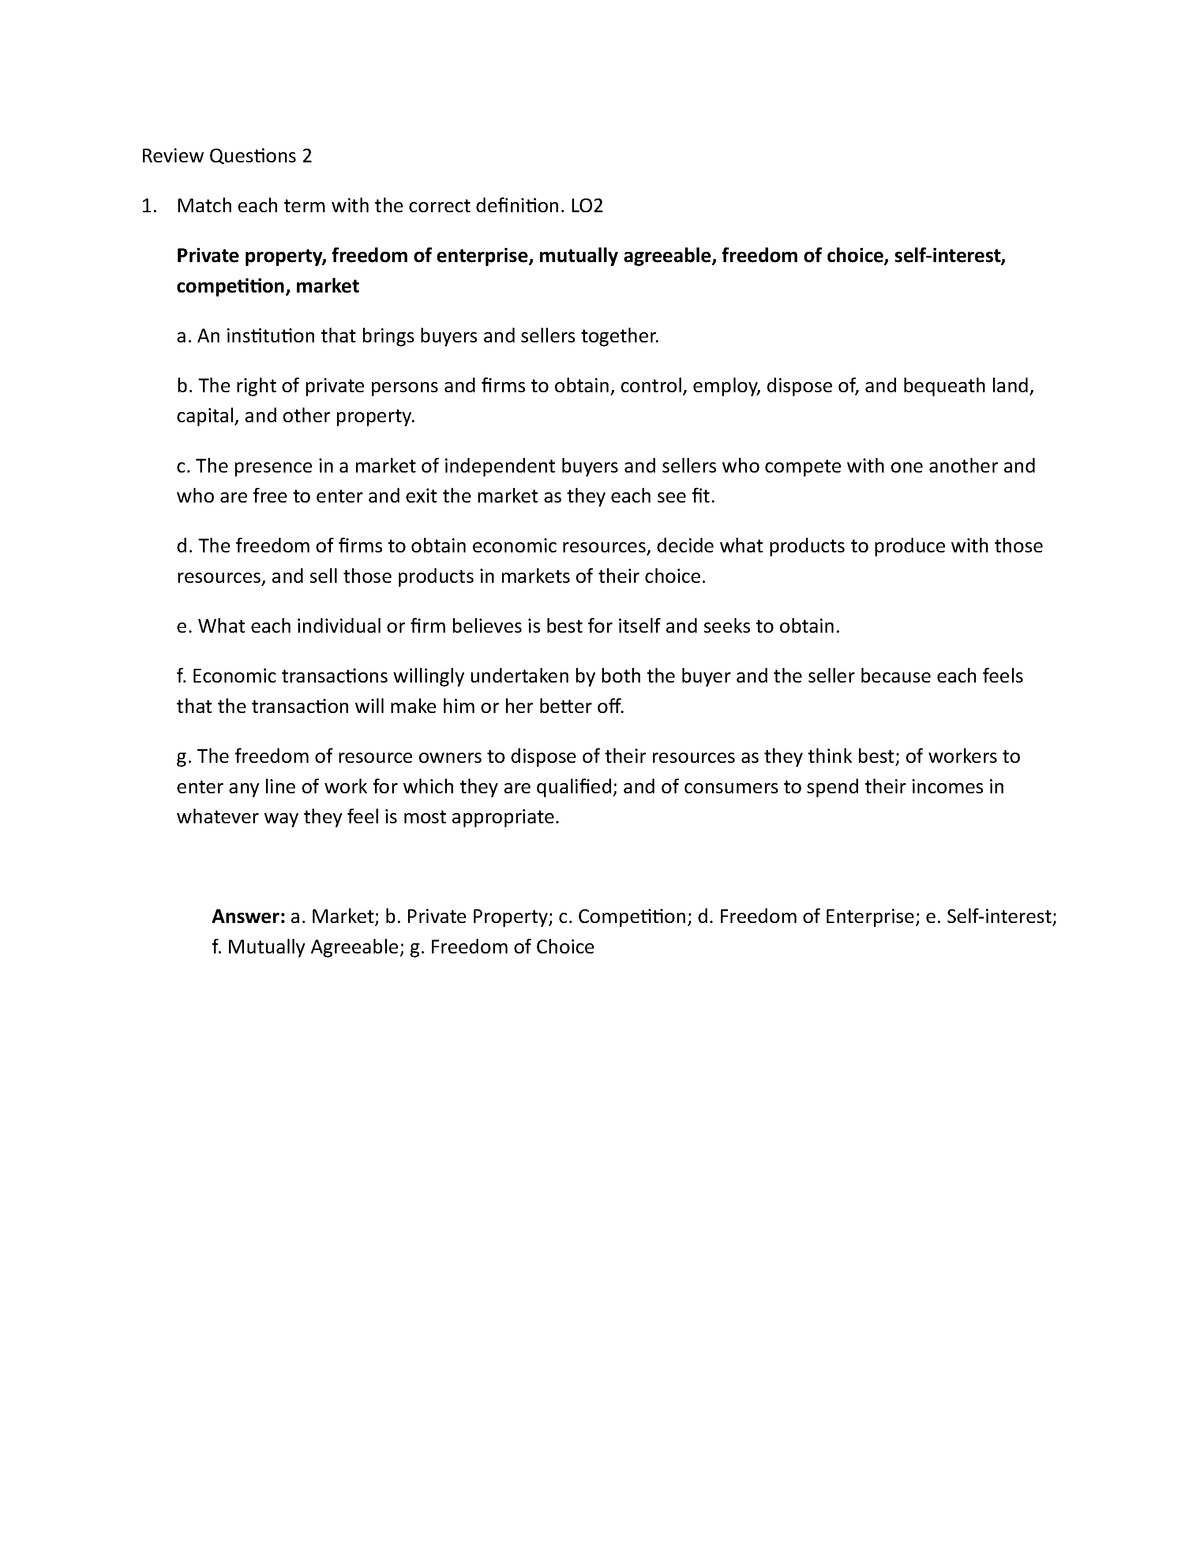 Chapter 2 Review Answer Key - ECON 1002 Microeconomics ...